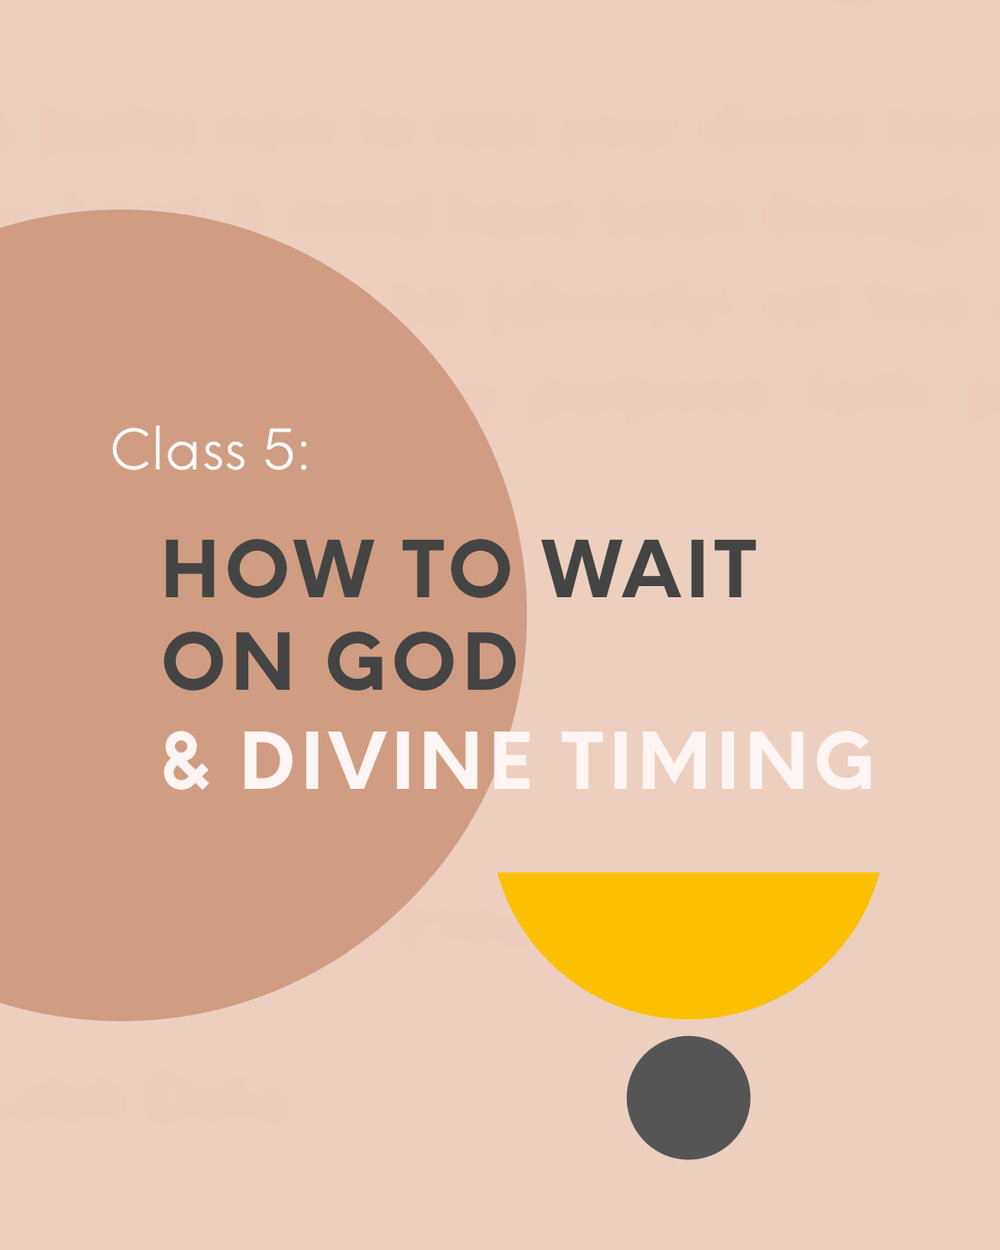 How To Wait on God & Divine Timing - Are you trusting the timing of your life? Are you being patient with the process? Are you fully present and making the most out of this season and process you've been assigned to?Learn the empowering art of high-vibrational waiting and trusting divine timing, this Saturday!Most of our mistakes, bitterness, discontent, and unhappiness we experience in life, is due to not knowing how to wait on God, not knowing how to honor the Divine timing of our life, by moving prematurely, and/or by not optimizing the season we've been assigned to.We'll learn about divine timing, how to have patience on the journey, how-to discern when to be still, move on, release, and take action, how-to develop and grow where you've been planted, and how-to win and elevate, by optimizing this season you're in.This class is about empowering you and freeing you from unnecessary blockages,emotional suffering, discontent,and stagnation, in you're current season.